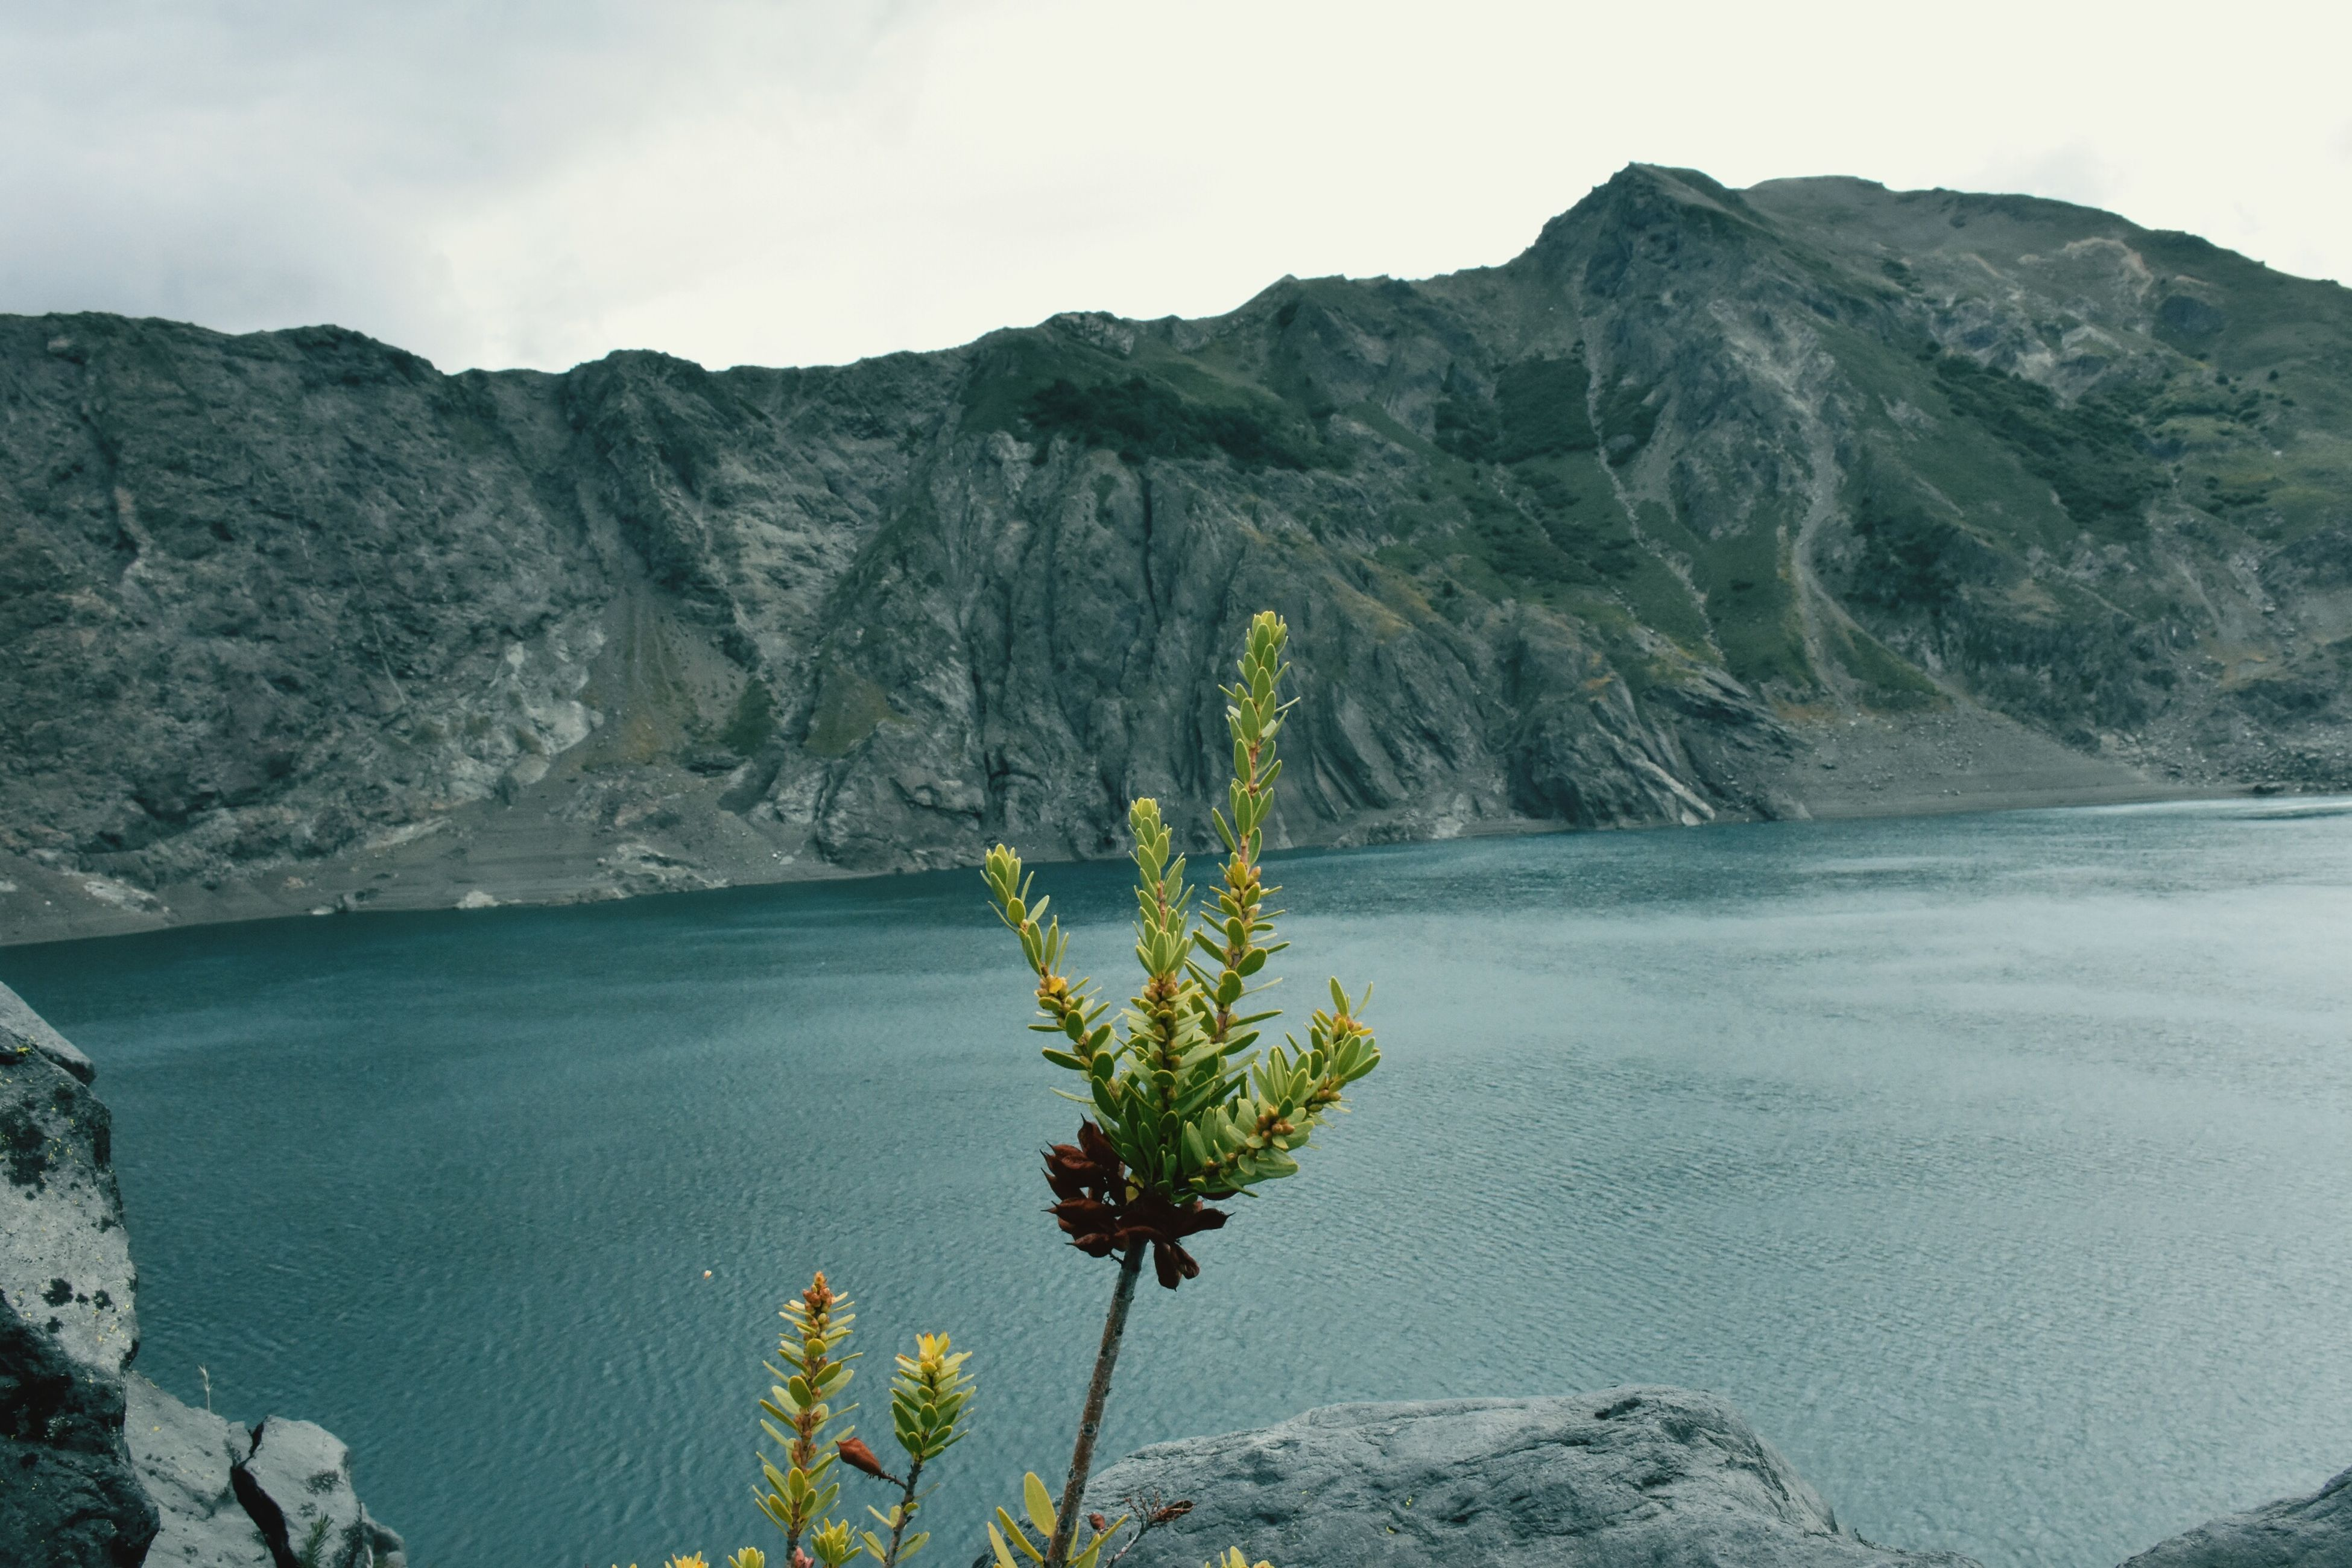 beauty in nature, flower, mountain, water, nature, growth, plant, outdoors, no people, day, lake, tranquil scene, scenics, sky, freshness, tranquility, landscape